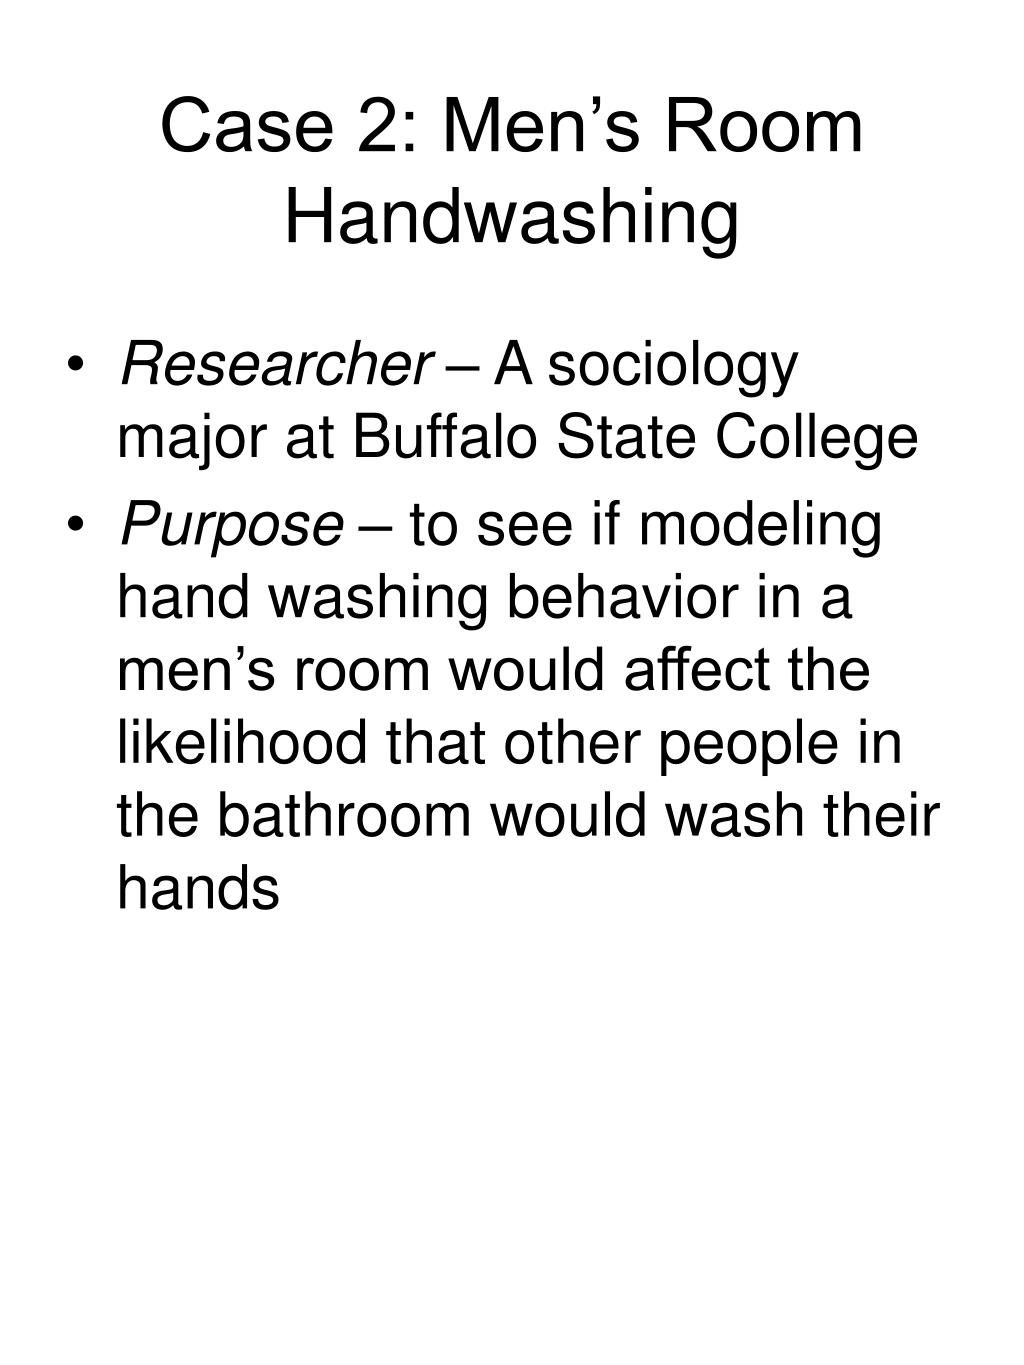 Case 2: Men's Room Handwashing